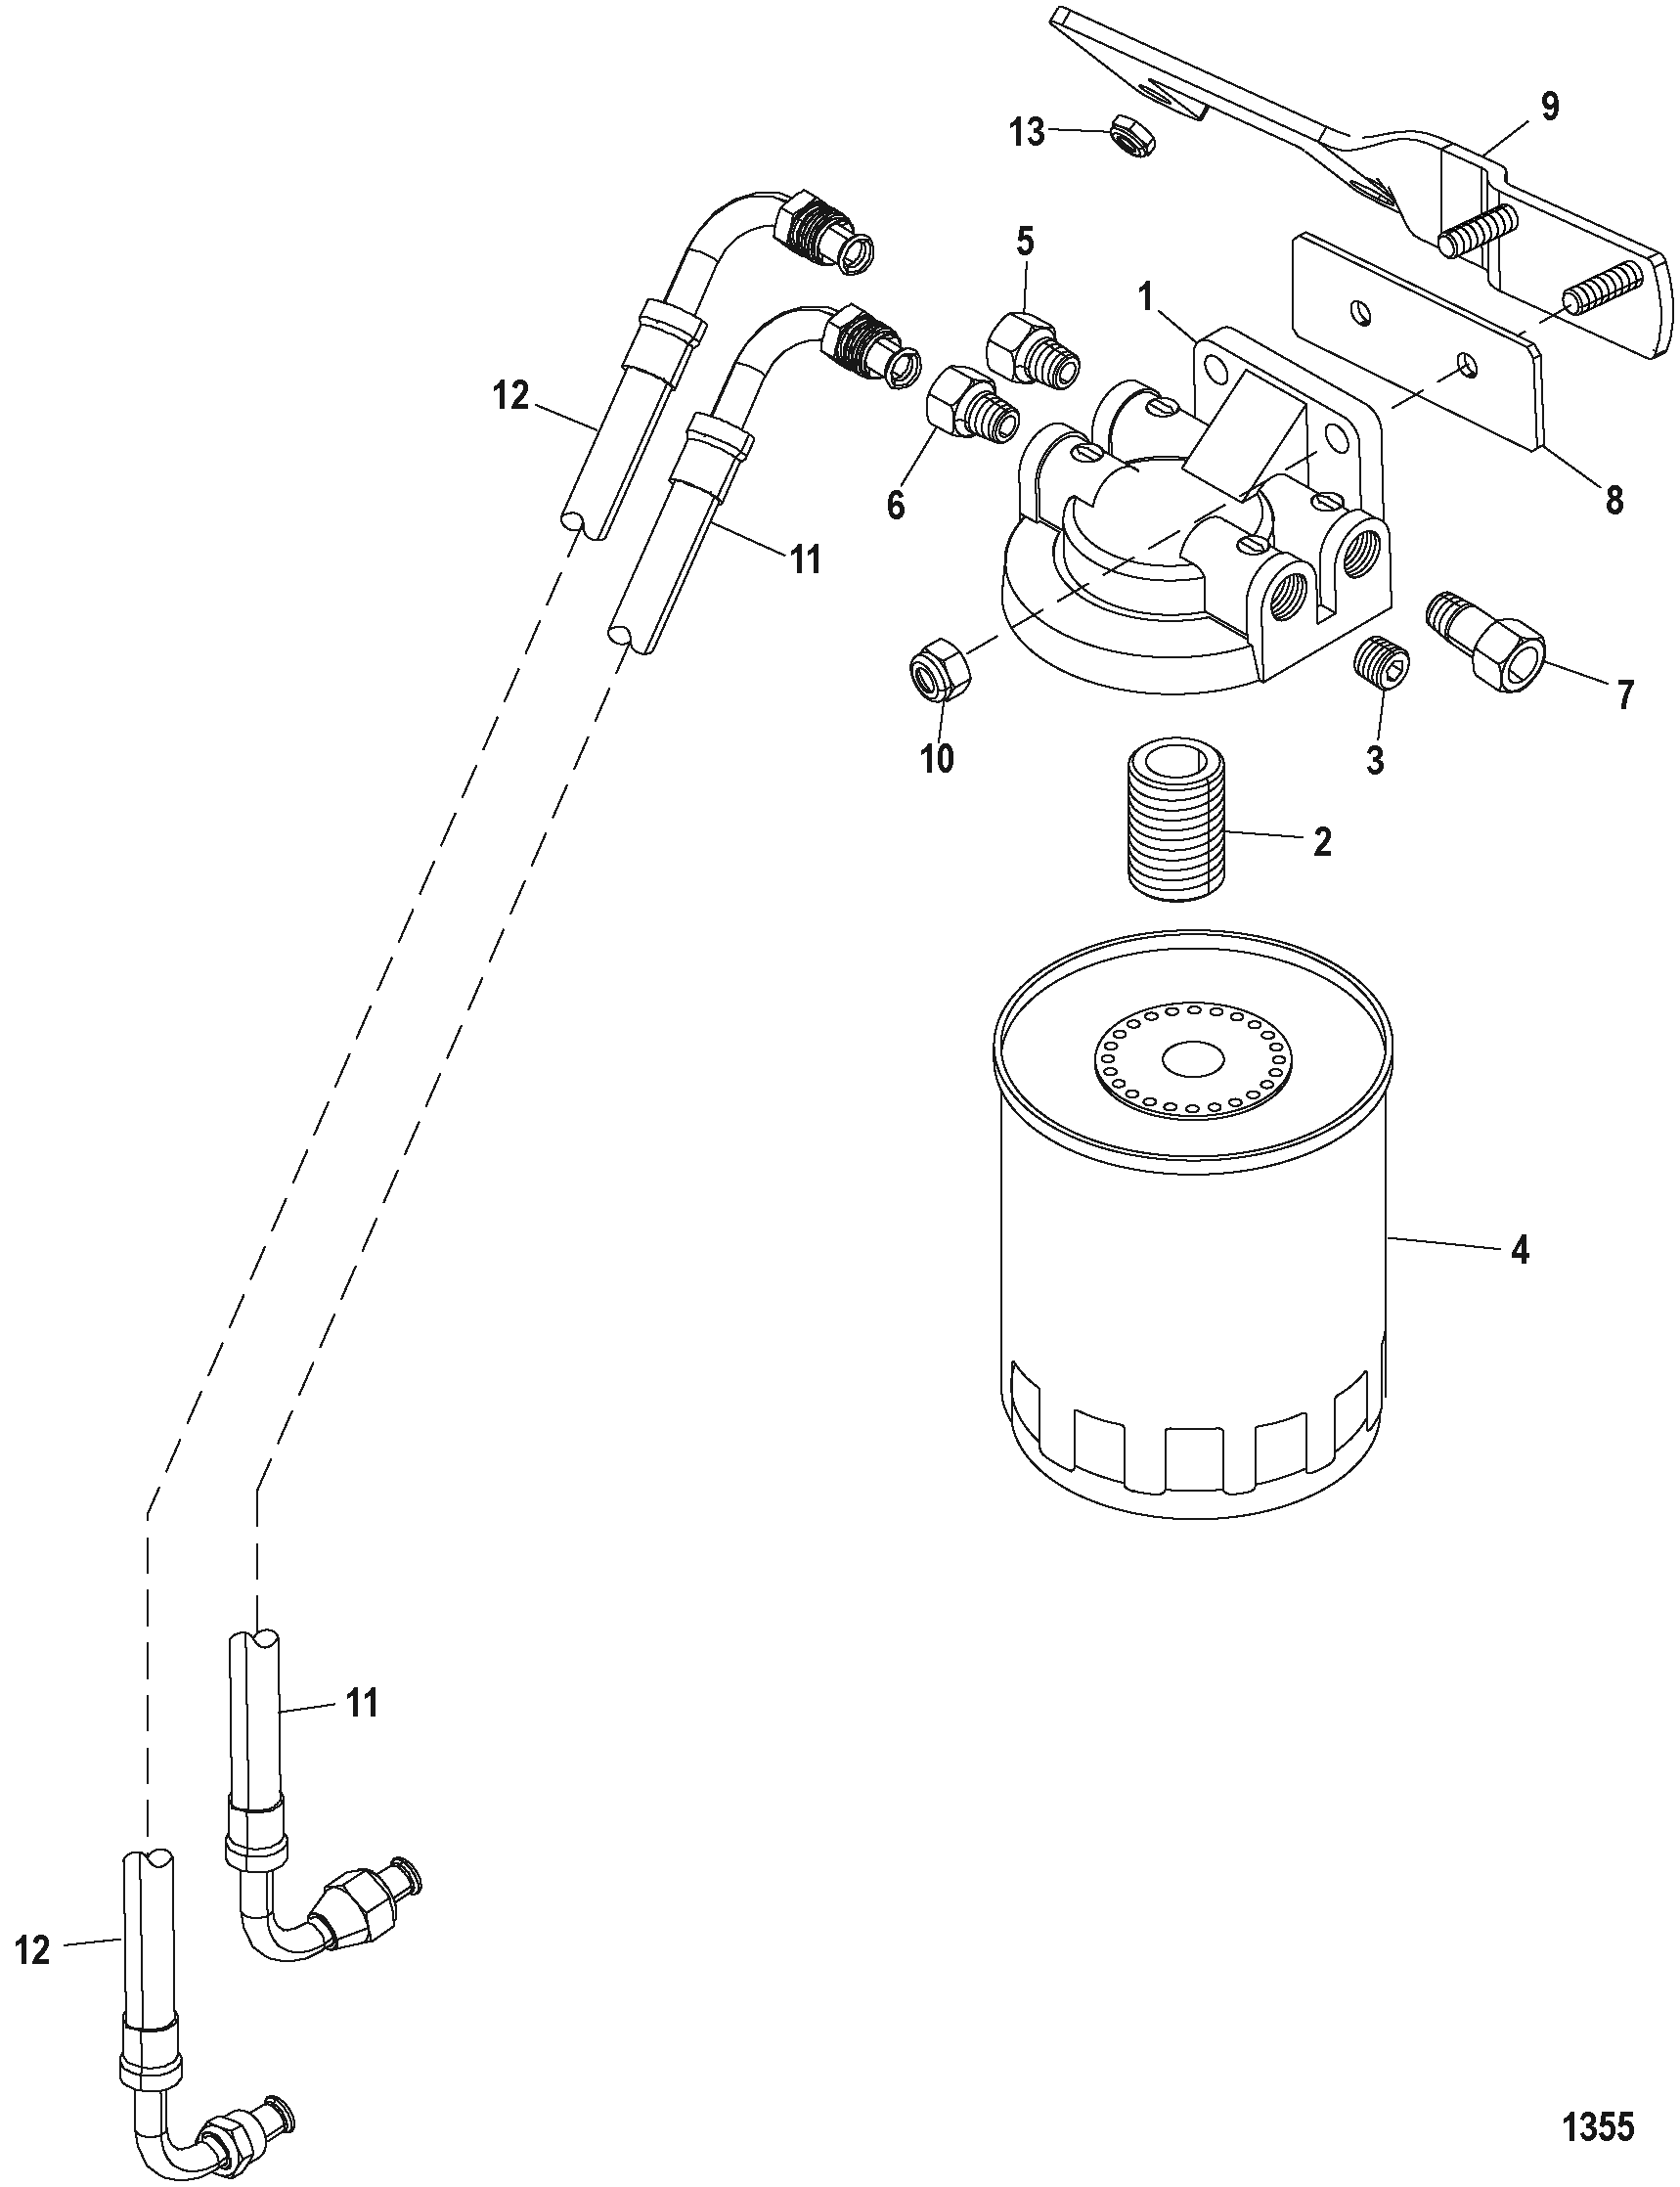 Hardin Marine Fuel Filter Alpha Boat Filters Section Drawing Hover Or Click To View Larger